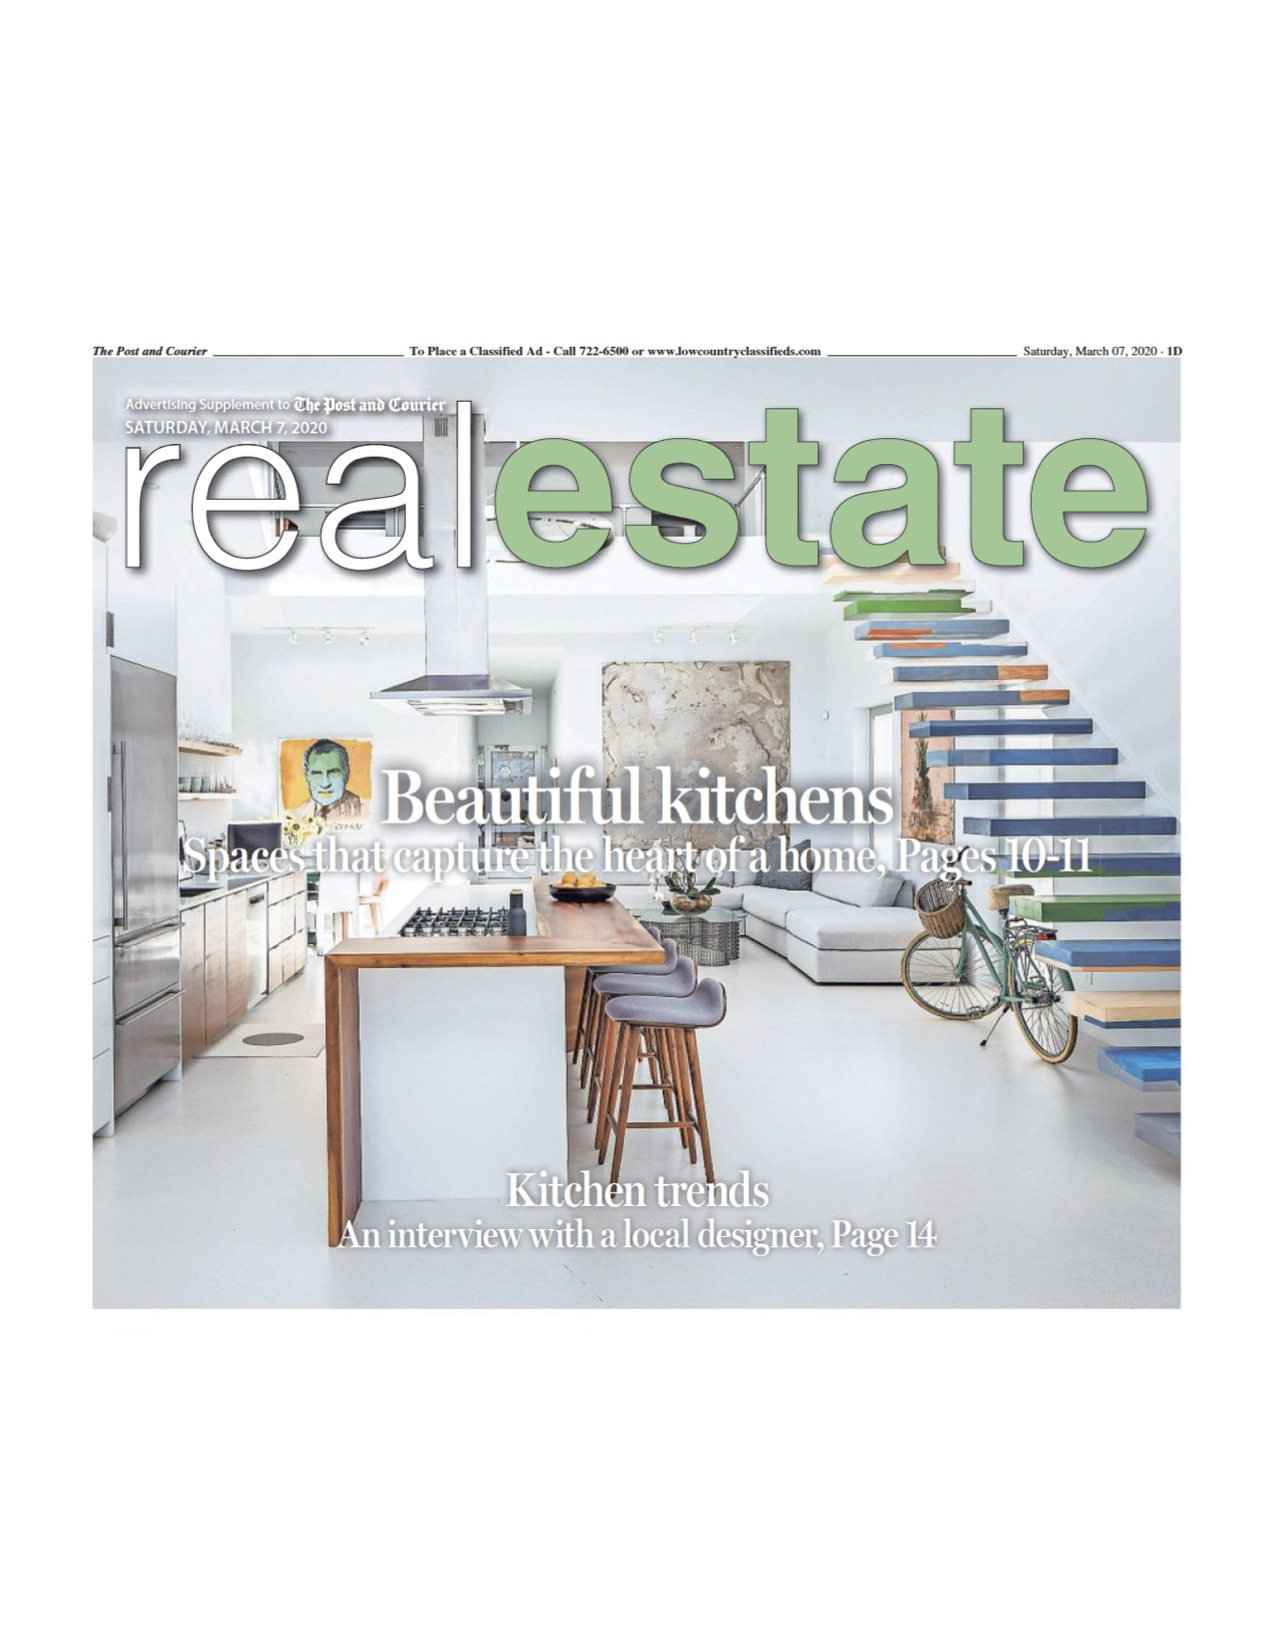 Post and Courier includes 116 Grove Street on the cover for Beautiful Kitchens piece